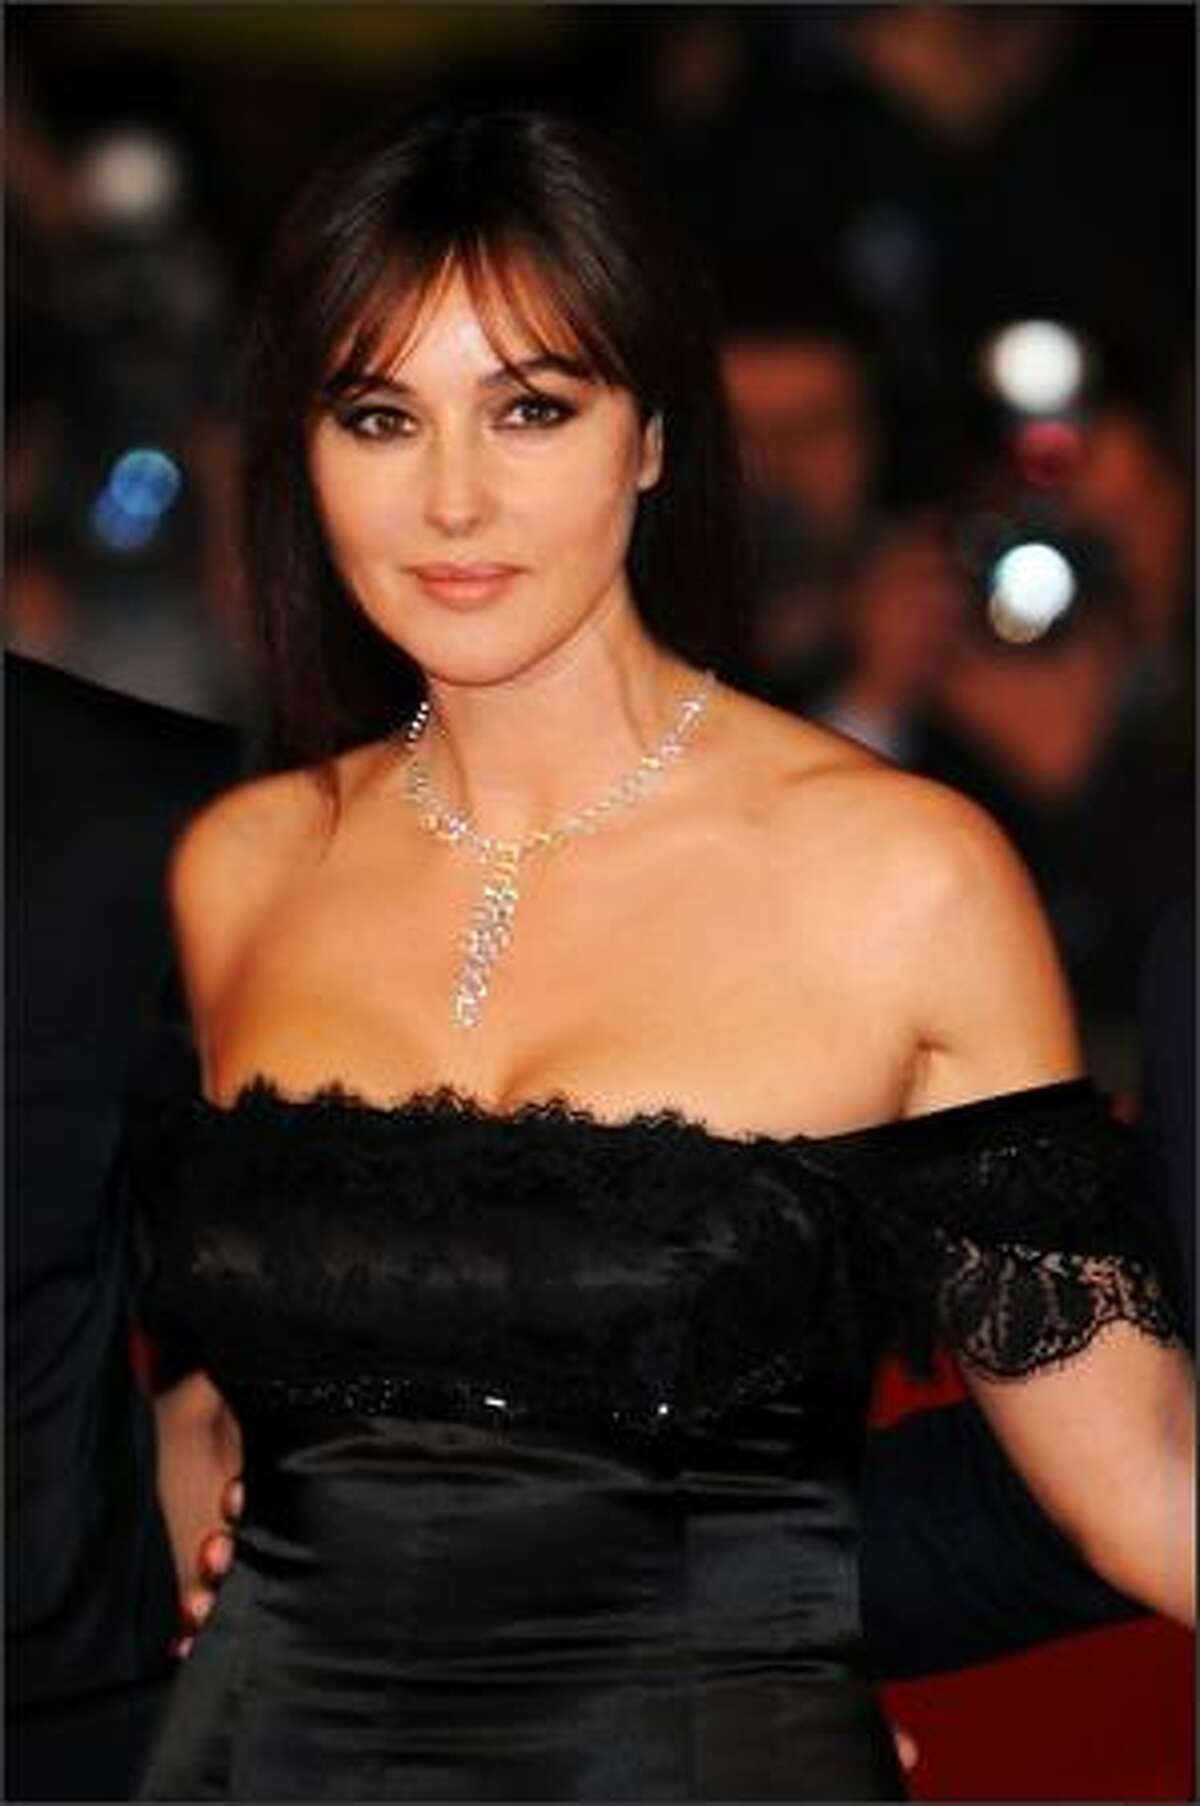 Actress Monica Bellucci arrives at the L'Uomo Che Ama Premiere during the 3rd Rome International Film Festival held at the Auditorium Parco della Musica on Thursday in Rome, Italy.